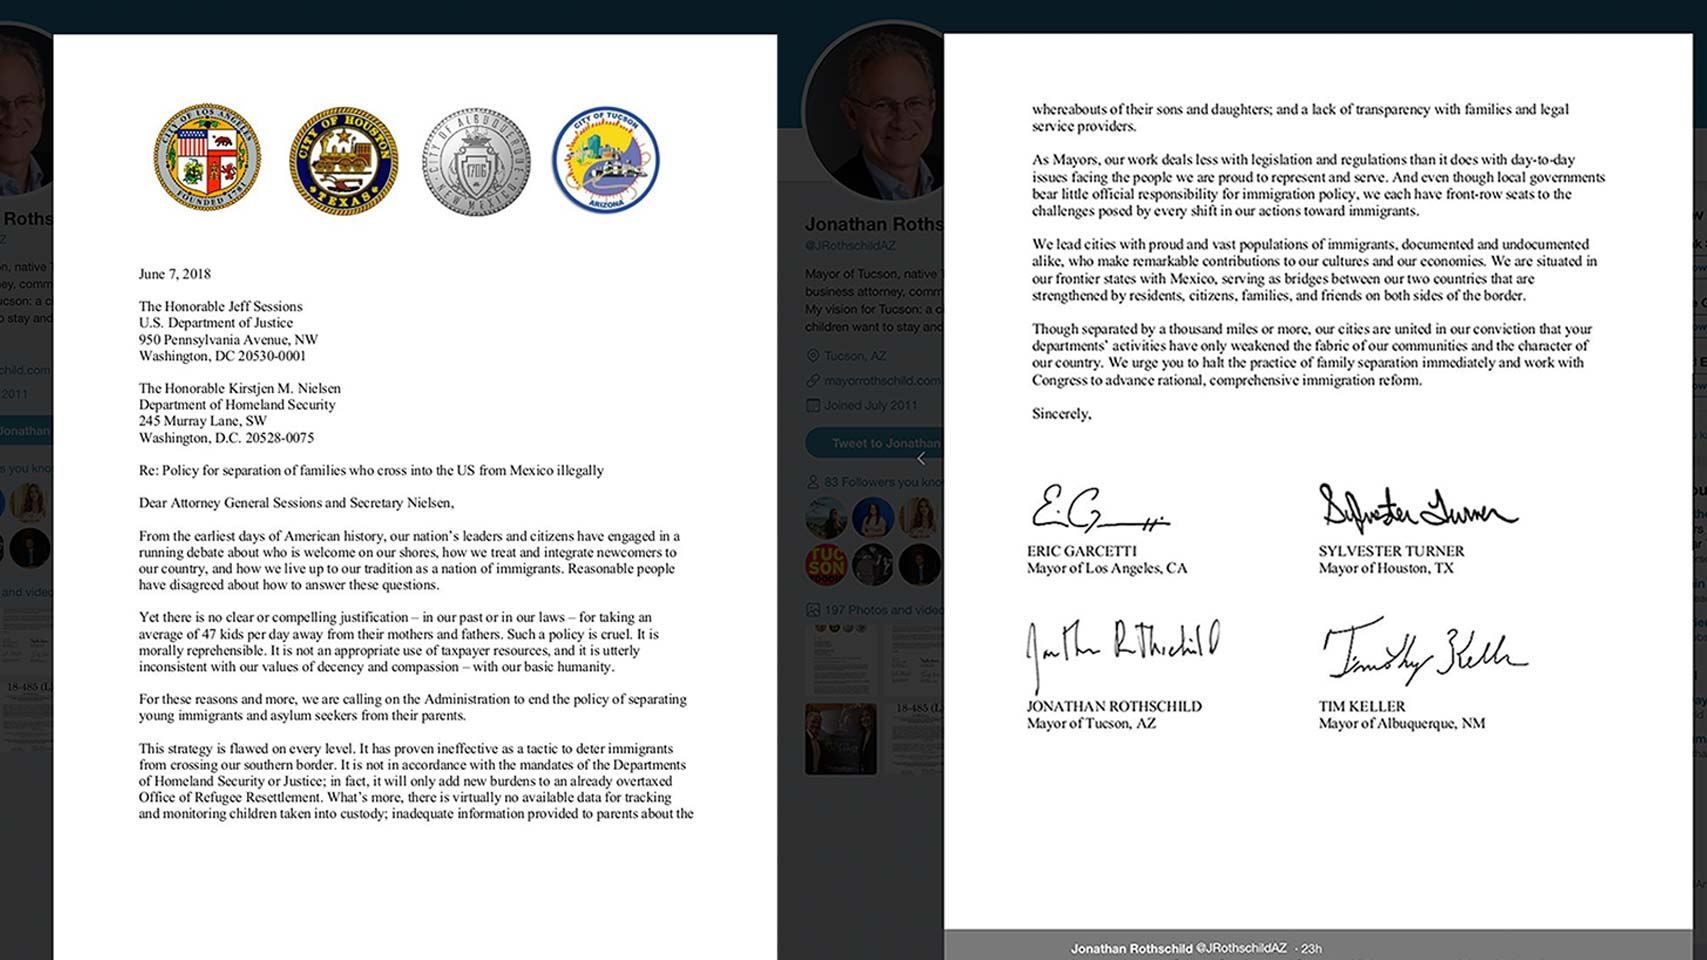 A letter to the Trump administration signed by the mayors of Tucson, Houston, Albuquerque and Los Angeles addressing a policy separating immigrant families seeking asylum.